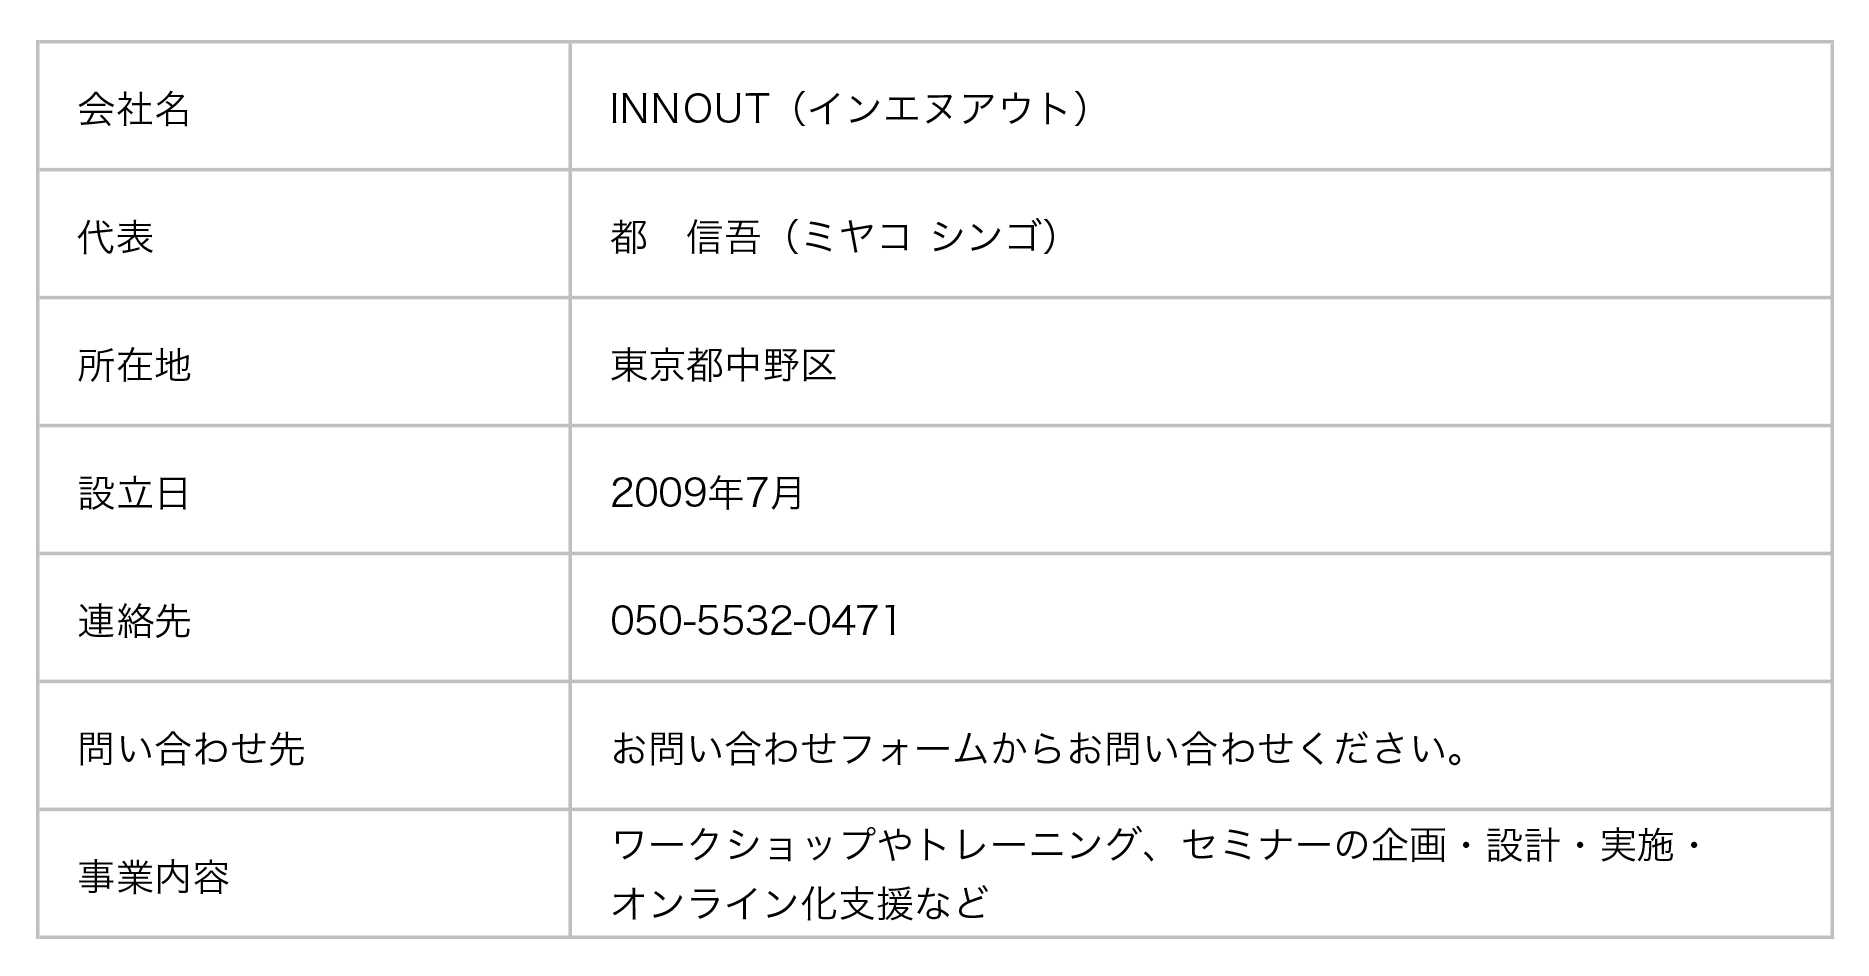 Our Team|INNOUT.jp